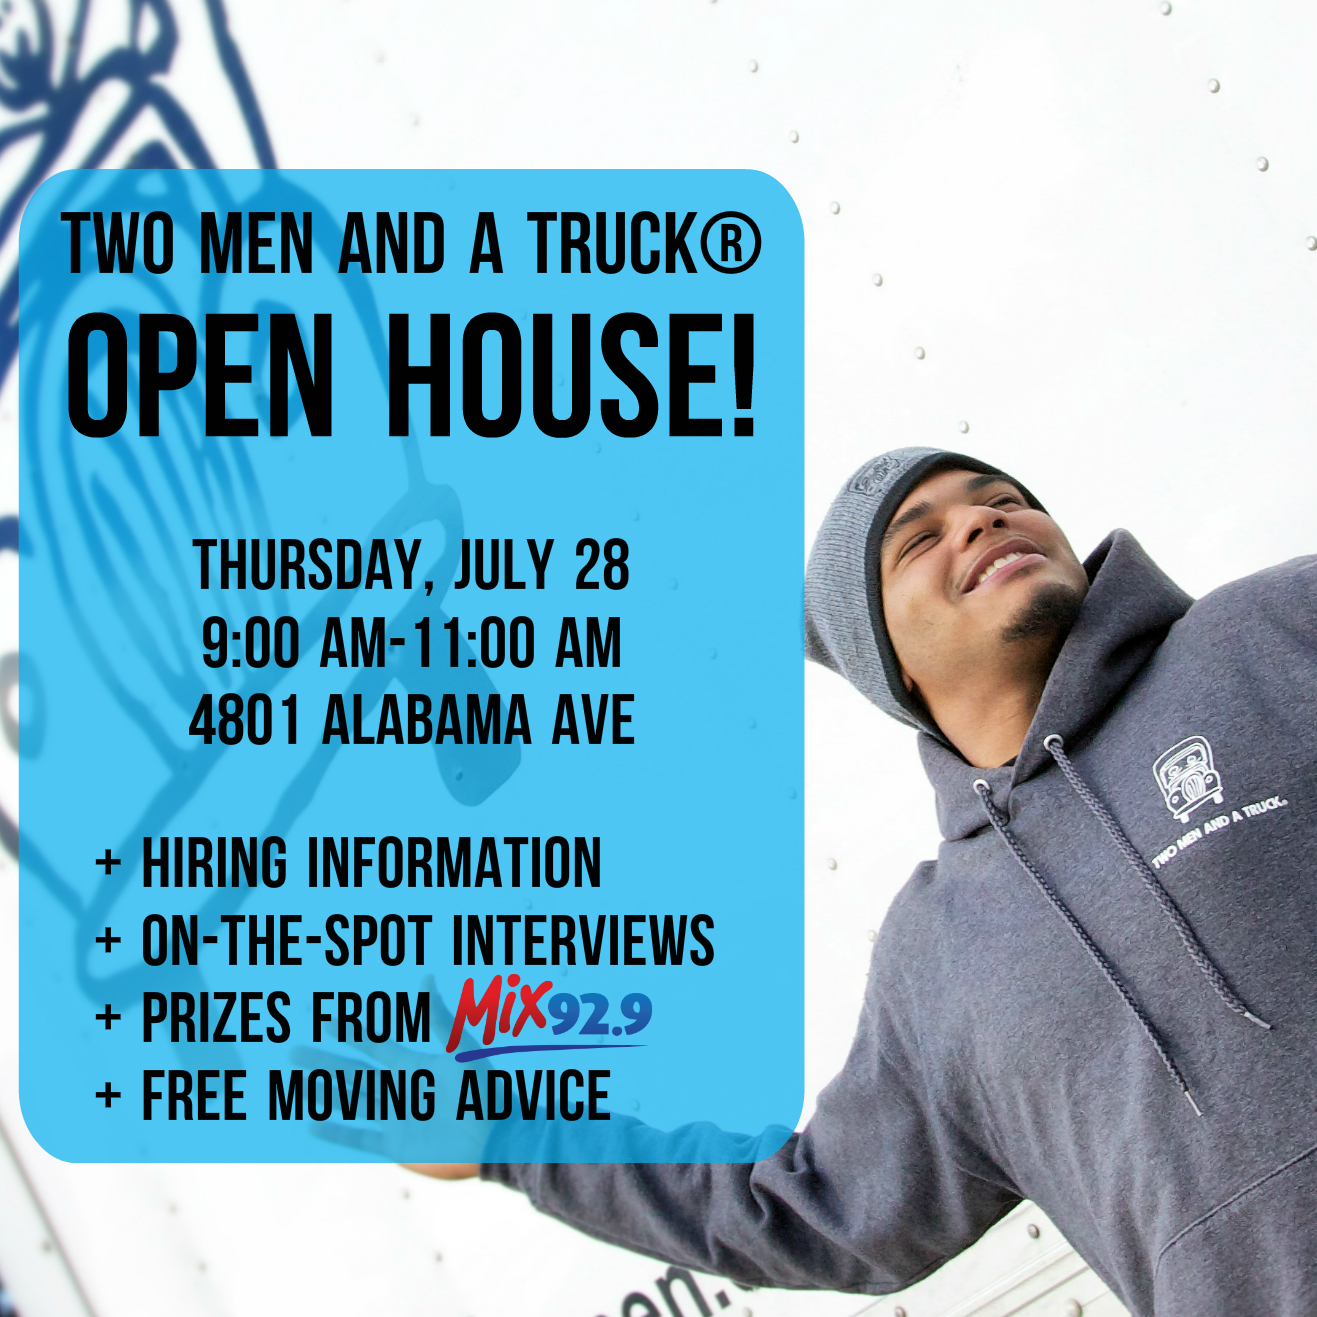 TWO MEN AND A TRUCK Nashville is hosting an open house